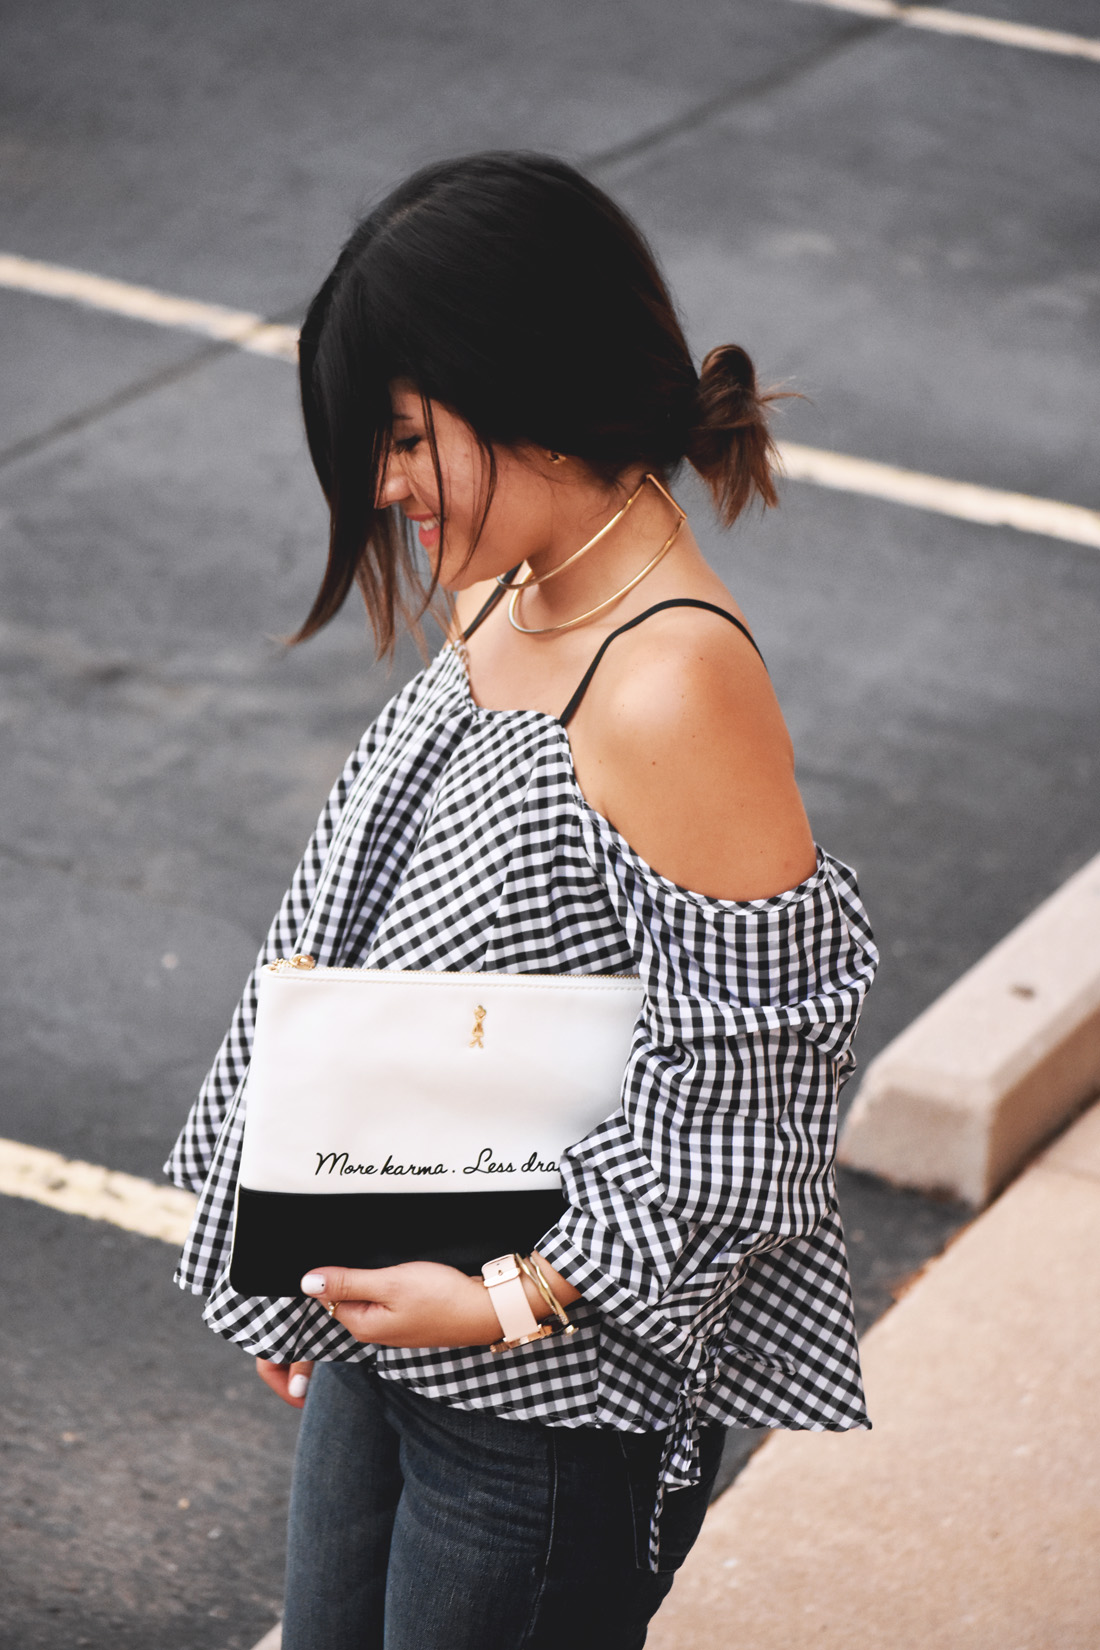 Carolina Hellal of Chic Talk wearing a chicwish gingham off the shoulder top, and le motto black and white clutch